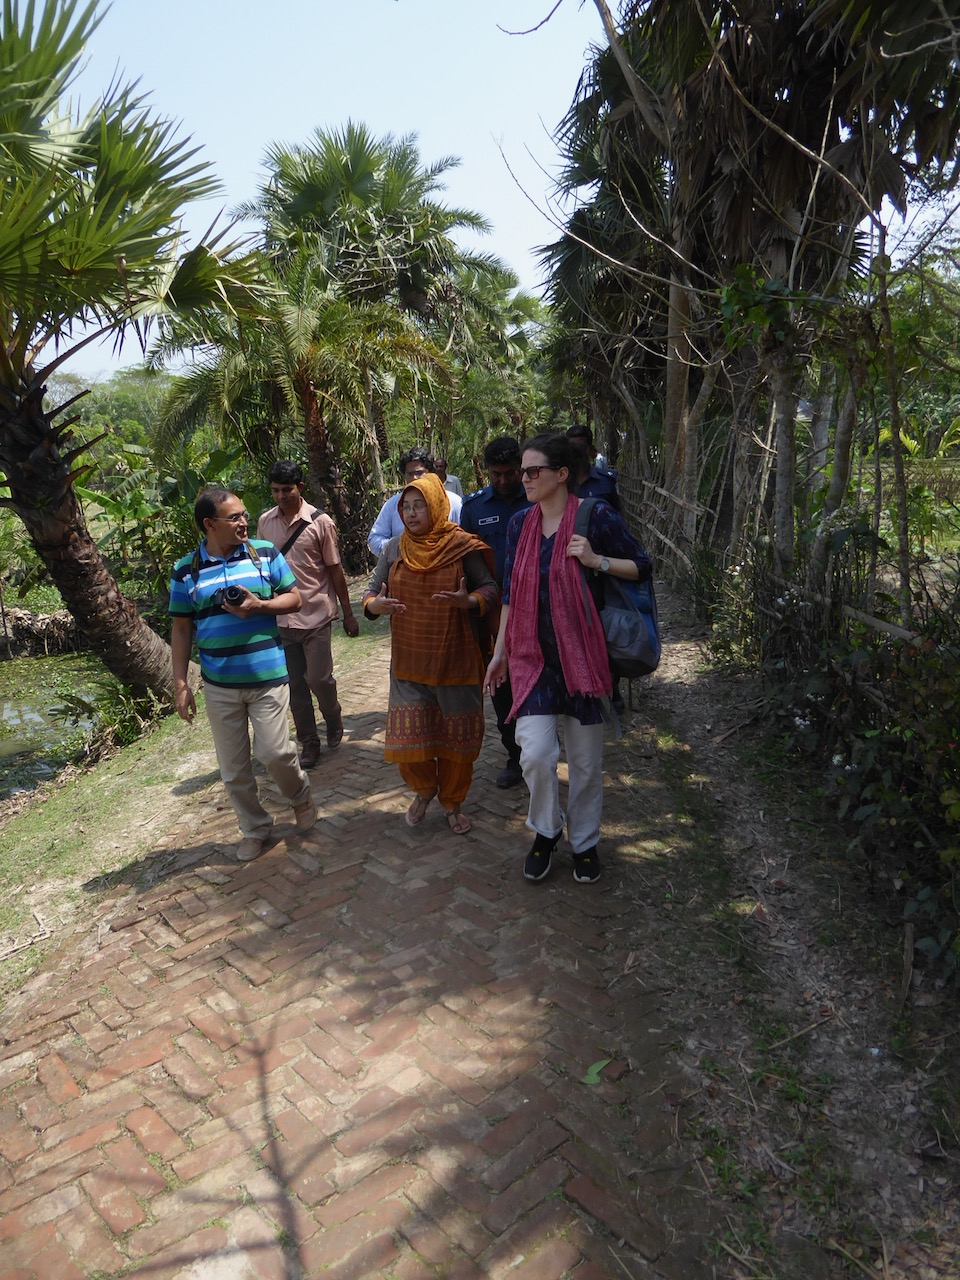 The authors on their way to visit a water project in Morrelganj, Bangladesh